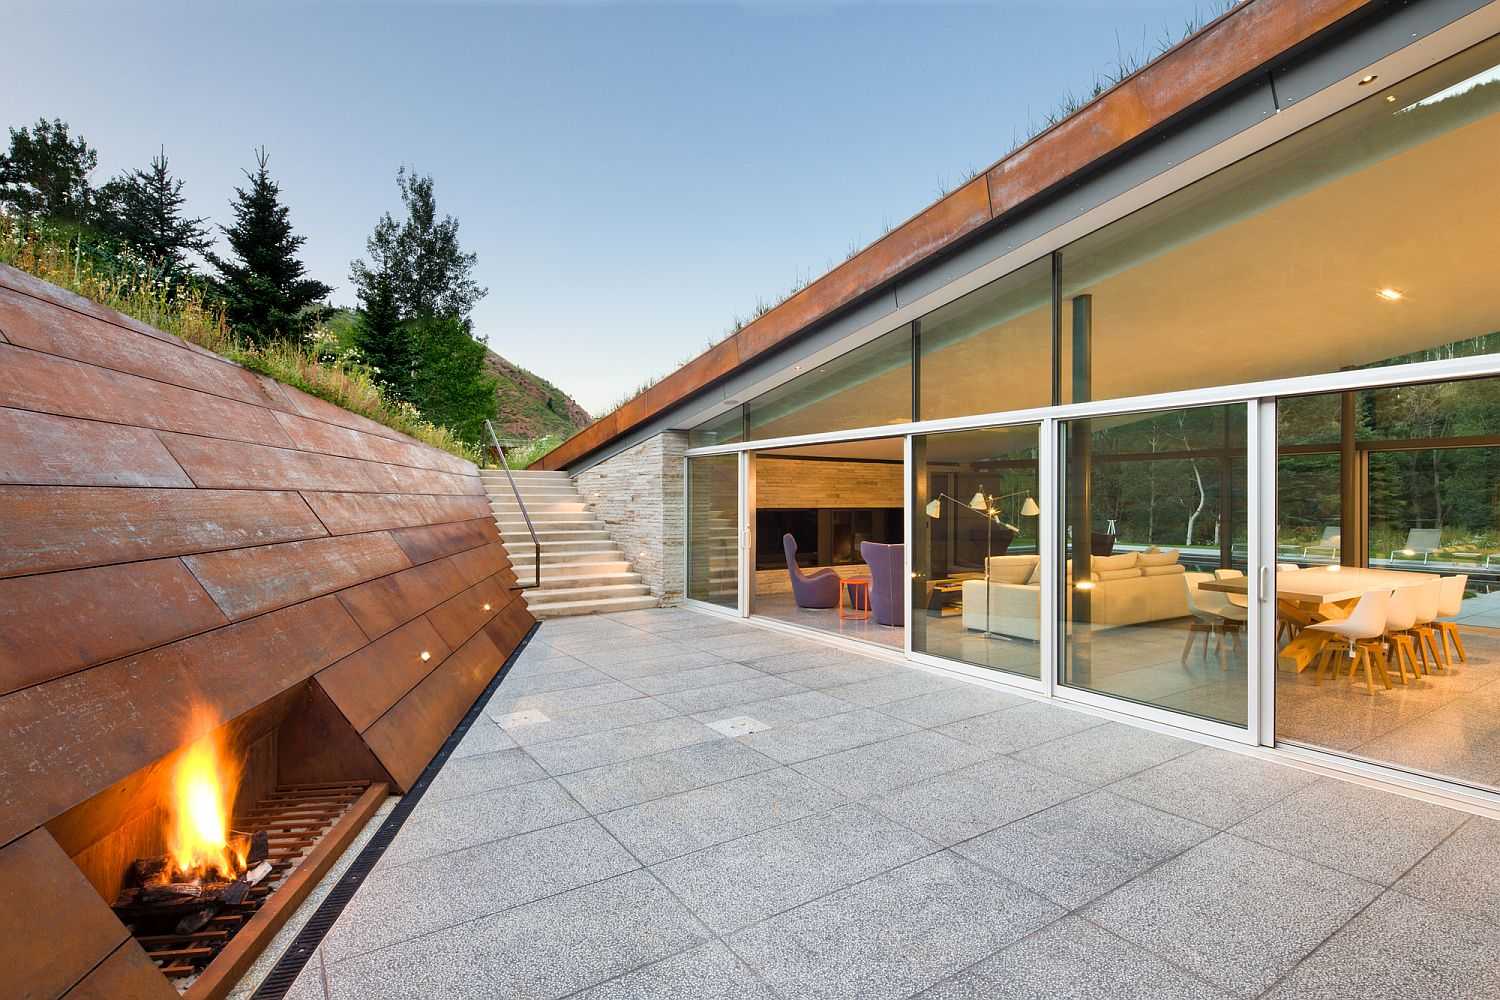 Corten clad walls provide textural contrast and warmth to the patio